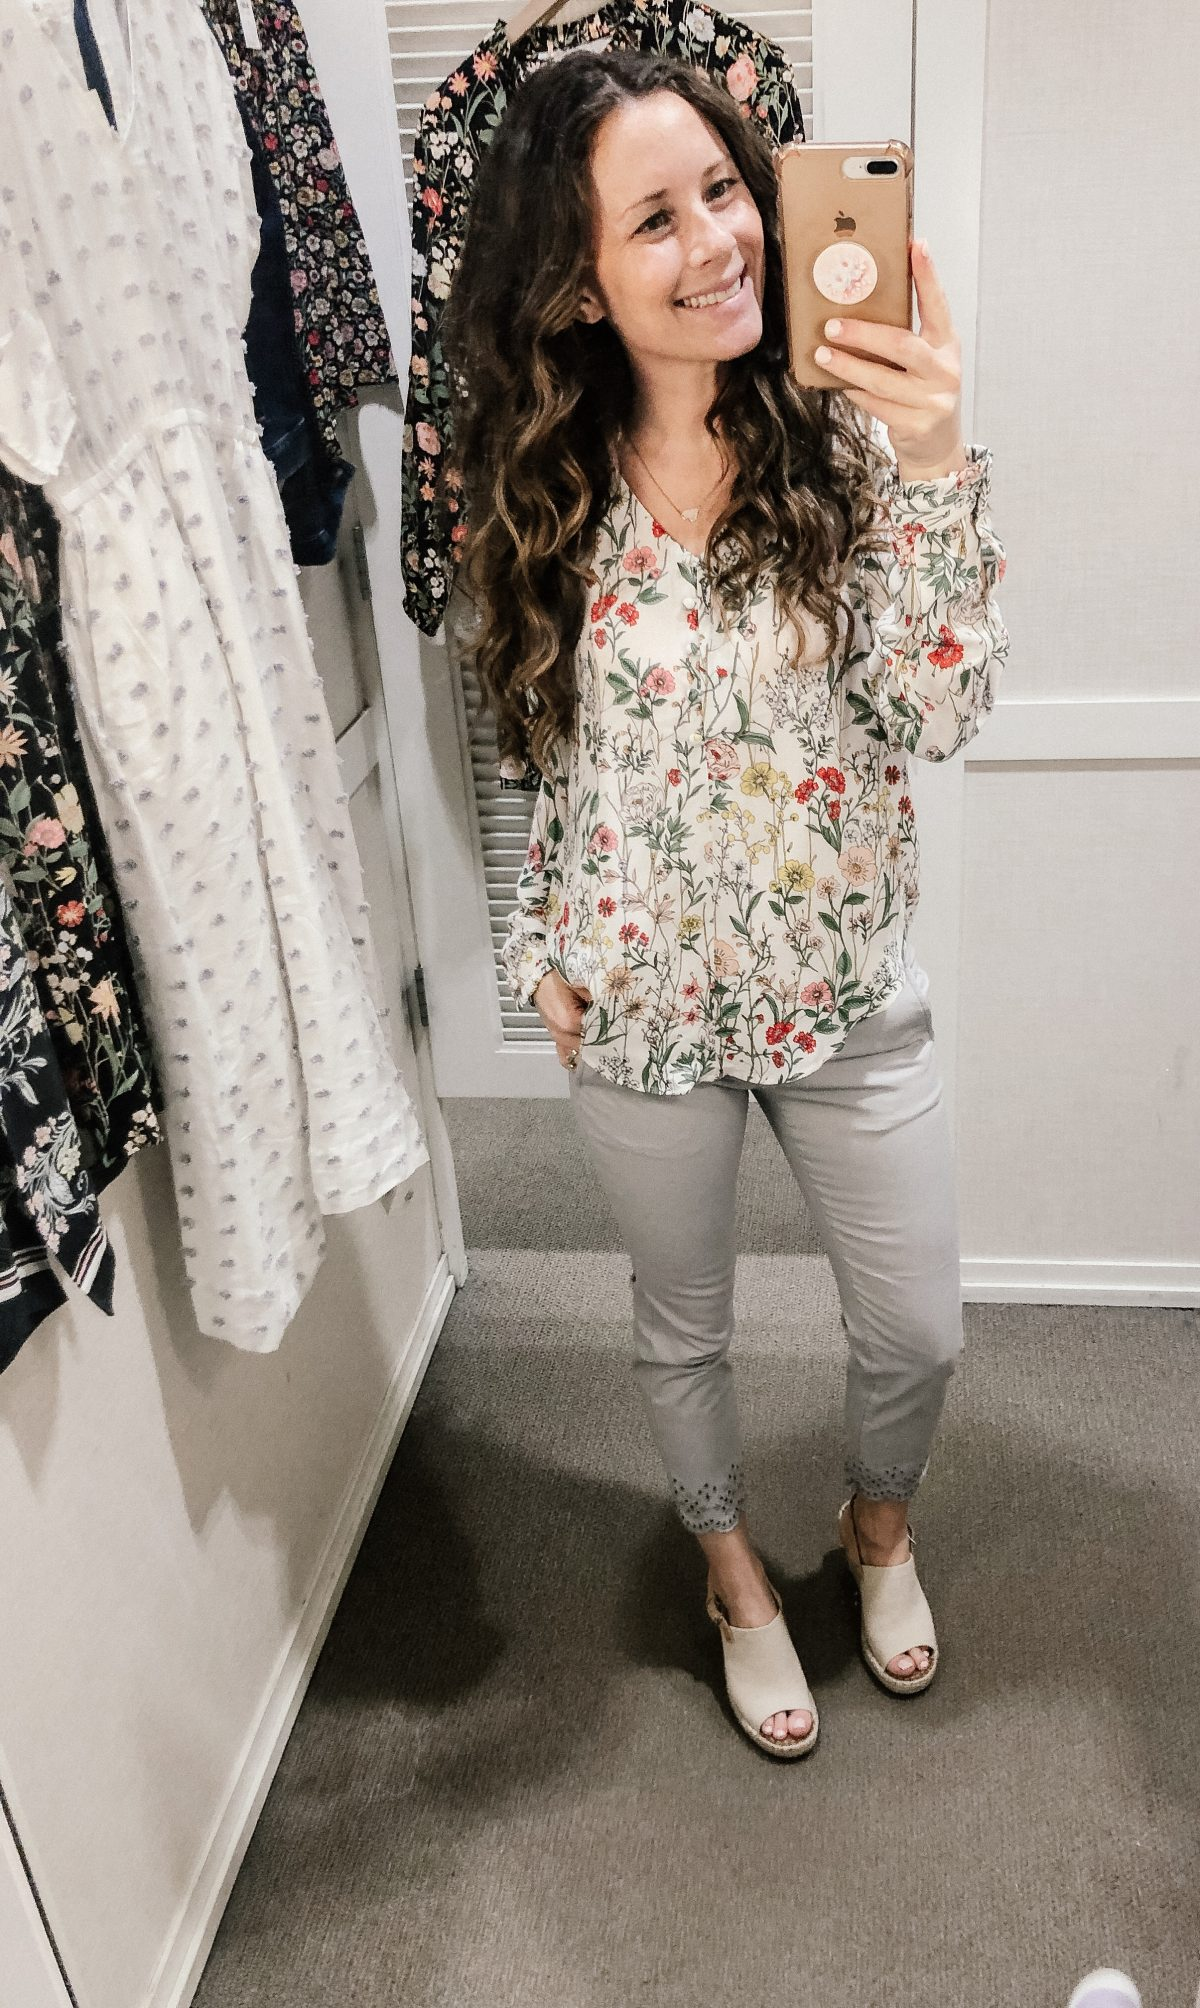 White Floral Long Sleeve Top and Gray Cropped Pants with Eyelet Hem on Woman at LOFT Confessions of a Northern Belle